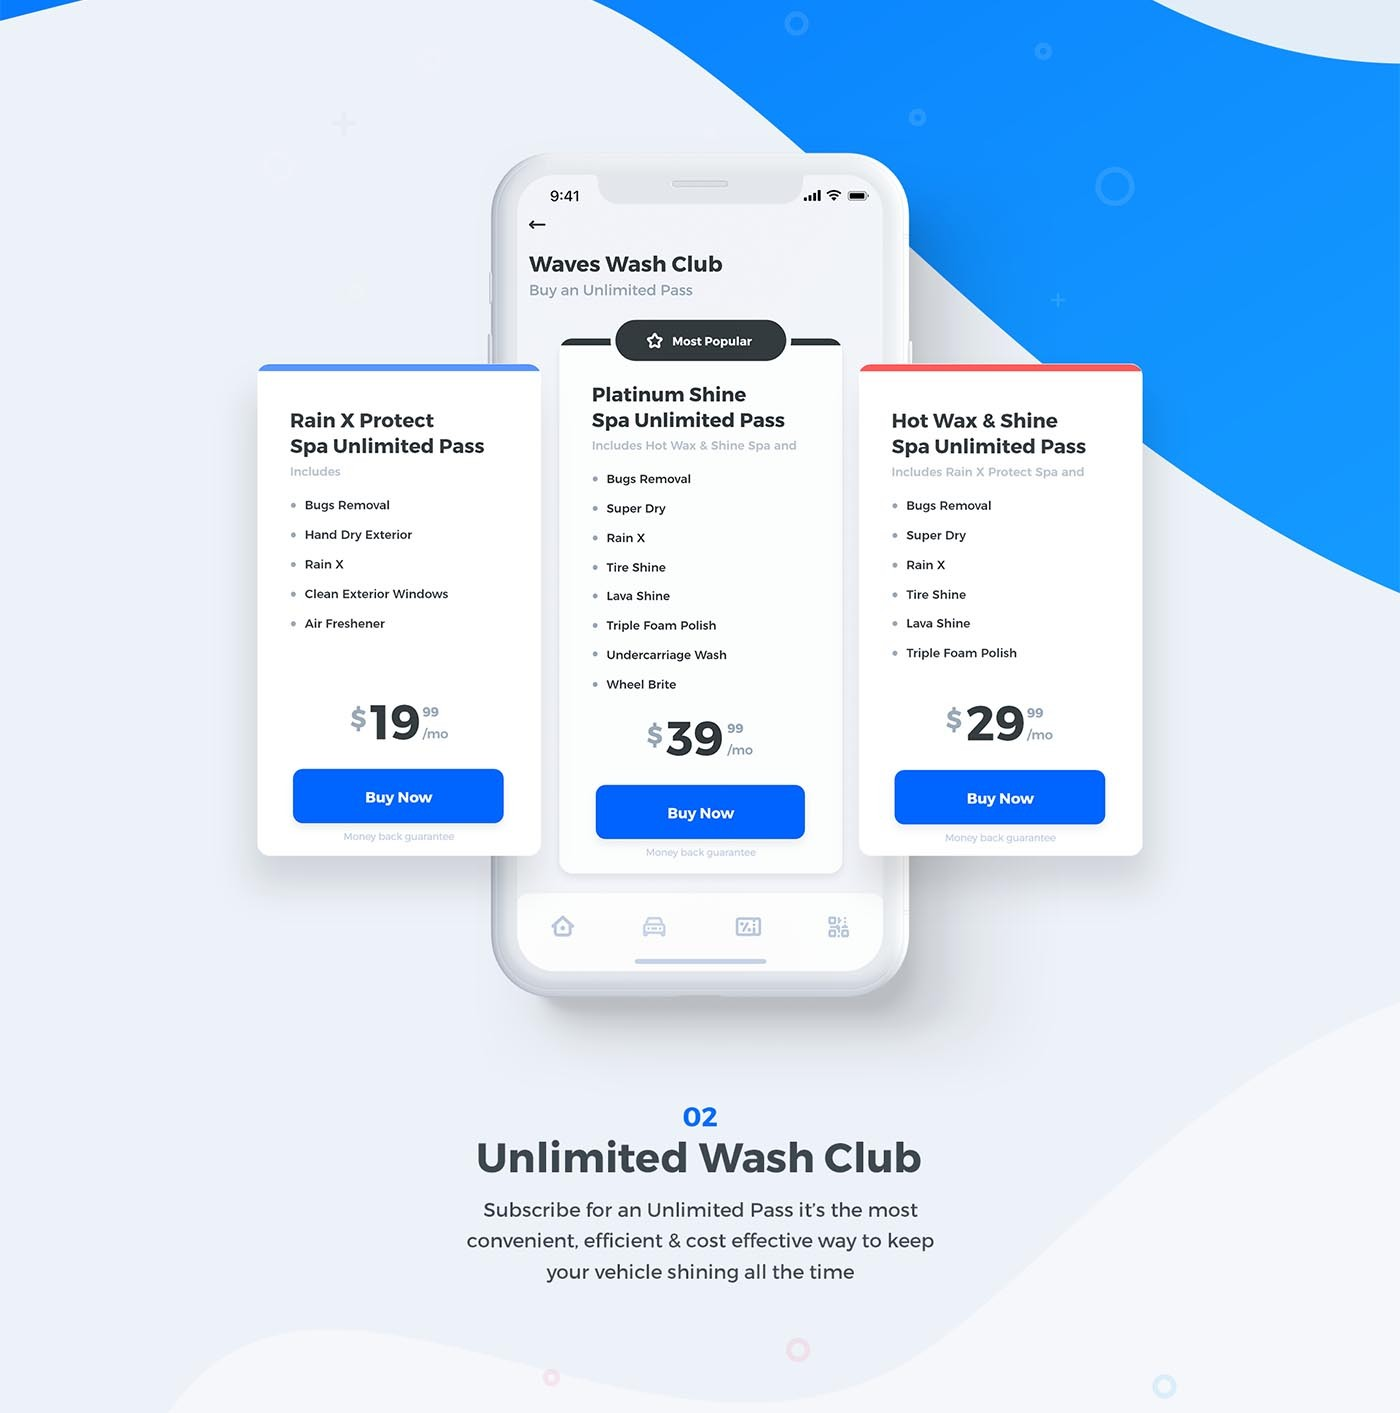 car wash app, carwash app, mobile app, ui viking, alex borisson, designer, portfolio, ui designer, designer portfolio, creative, product designer, graphic designer, inspiration, car wash, car wash website